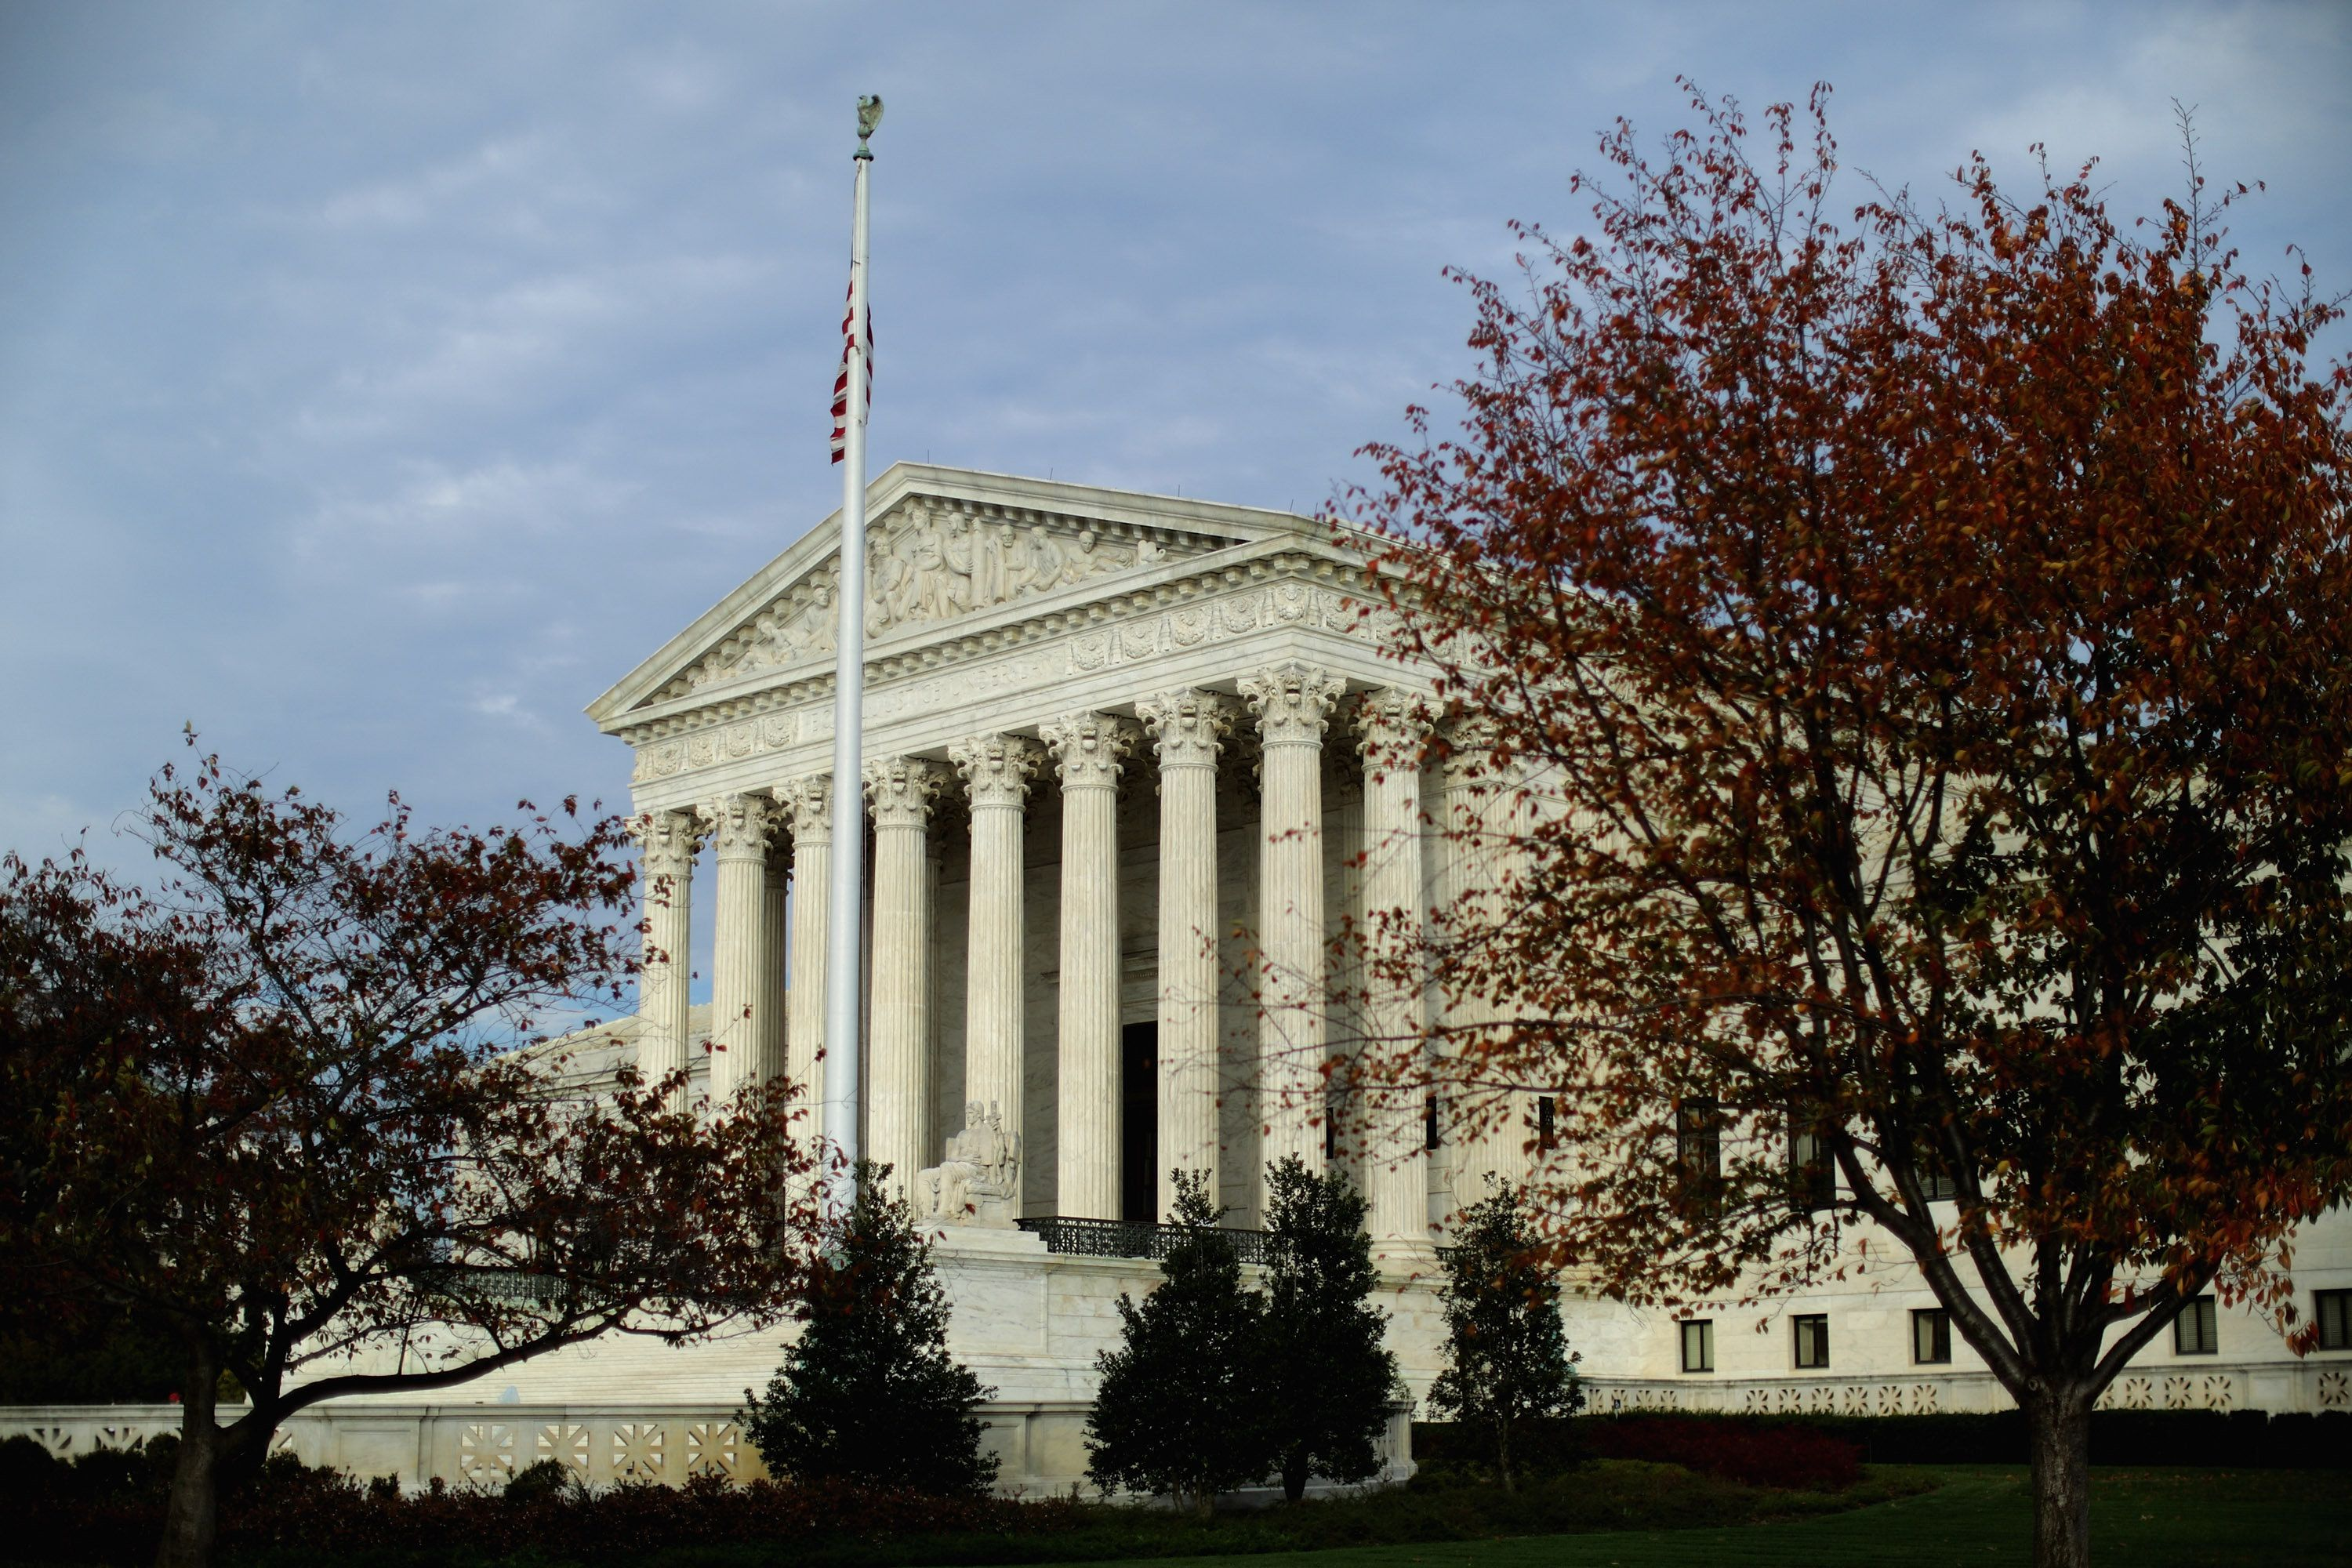 WASHINGTON, DC - NOVEMBER 06:  The United States Supreme Court building is framed by fall foliage November 6, 2015 in Washington, DC. The court announced Friday that it will hear another case related to the landmark Affordable Care Act, or Obamacare, and its contraception mandate as it relates to religious nonprofit groups.  (Photo by Chip Somodevilla/Getty Images)